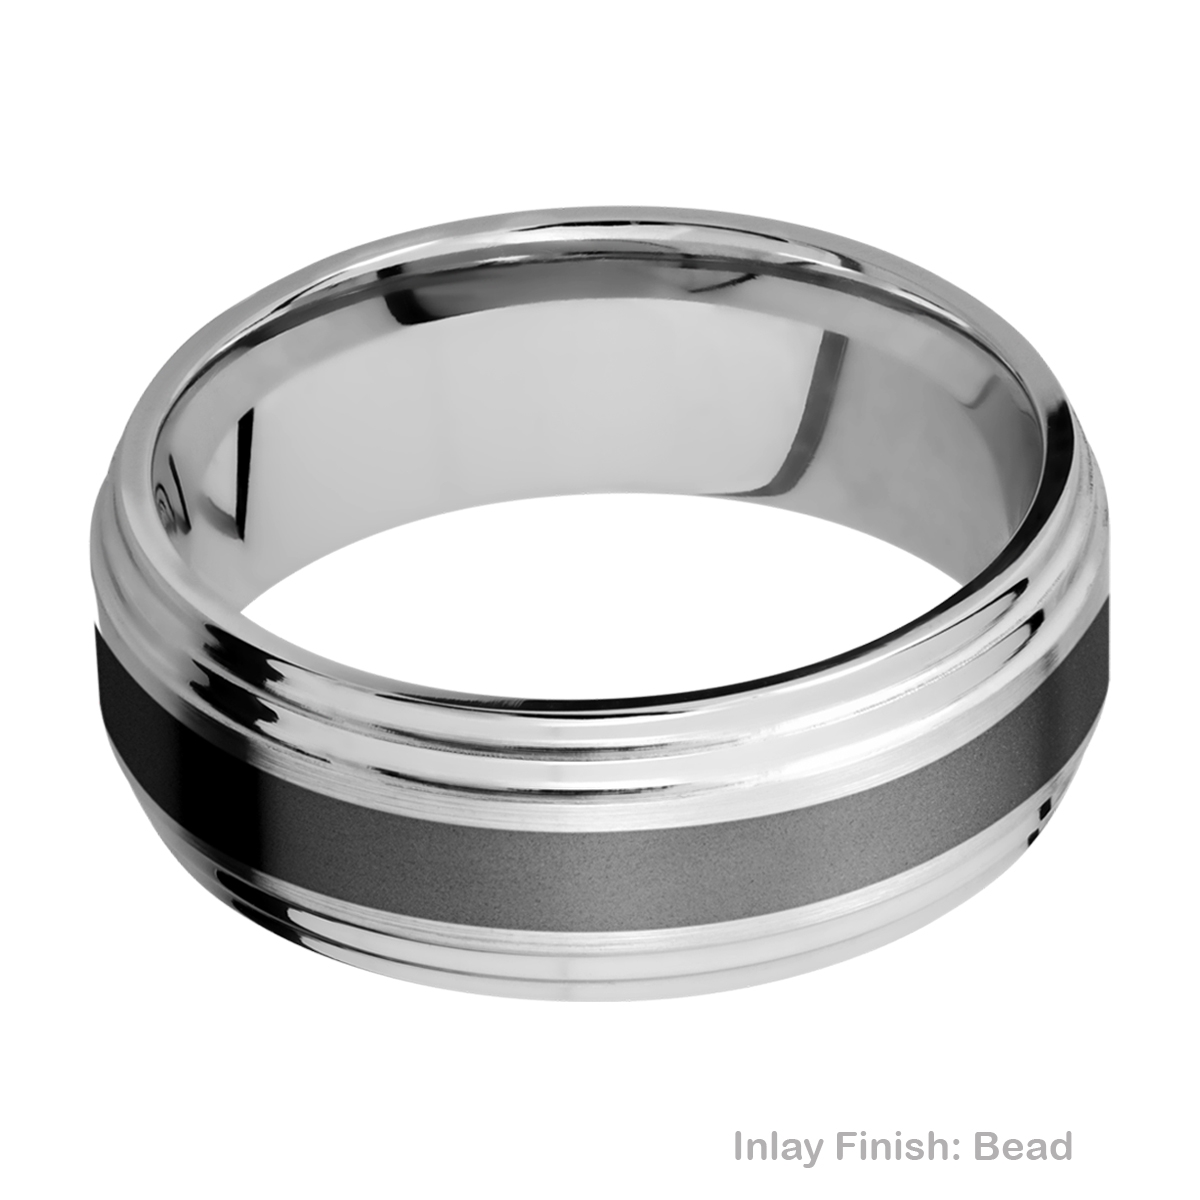 Lashbrook CCPF3F2S13/ZIRCONIUM Cobalt Chrome Wedding Ring or Band Alternative View 2